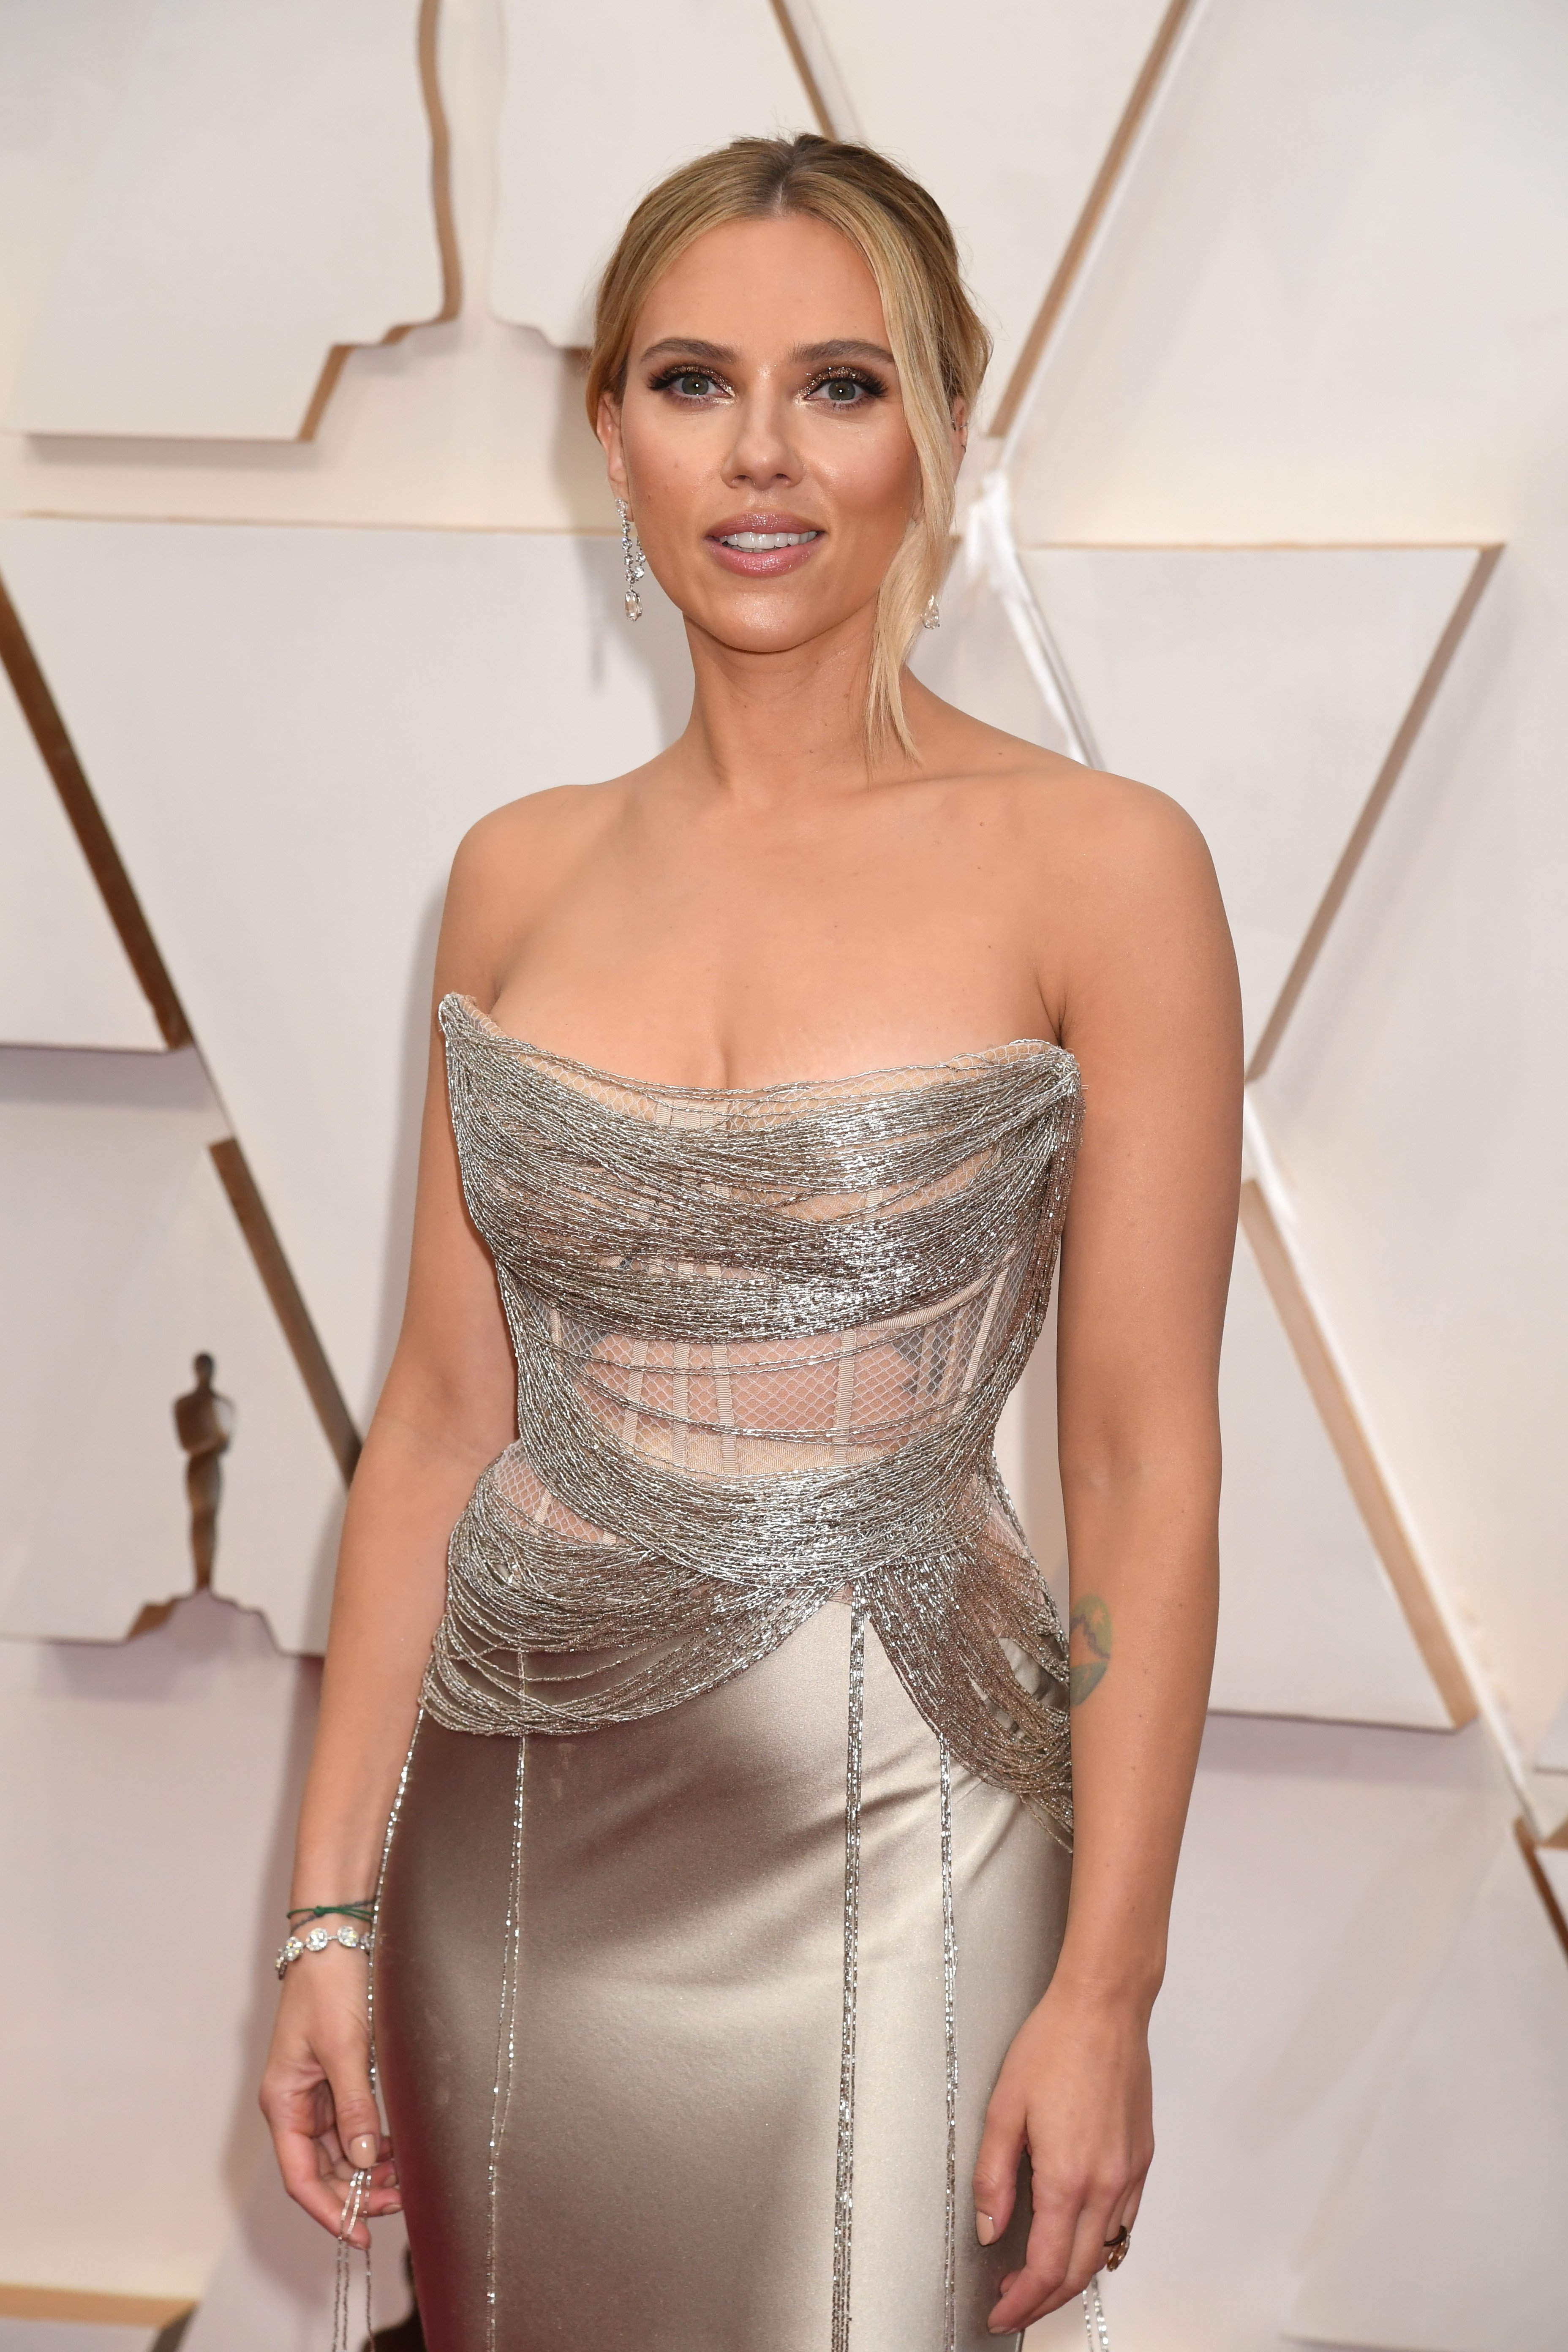 Scarlett Johansson attends the 92nd Annual Academy Awards at Hollywood and Highland on February 09, 2020 in Hollywood, California | Photo: Getty Images